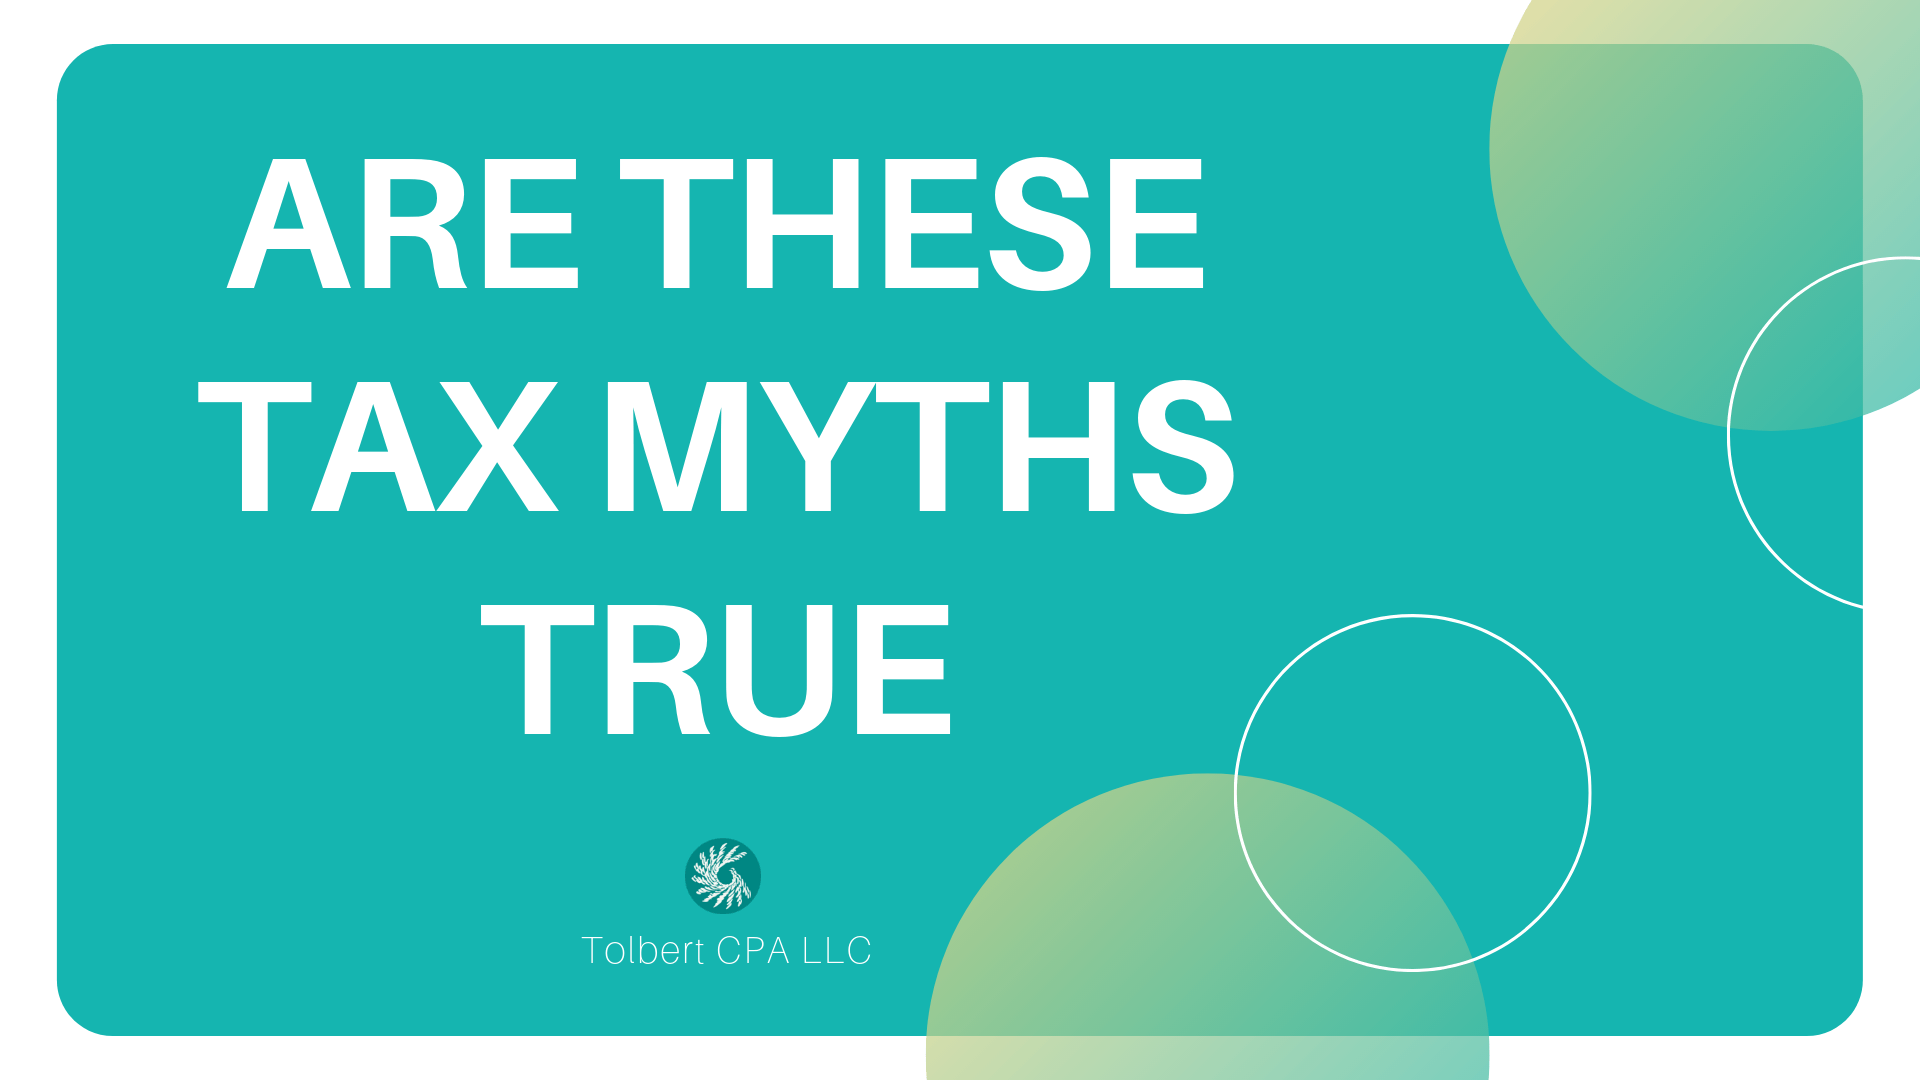 Are These Tax Myths True?